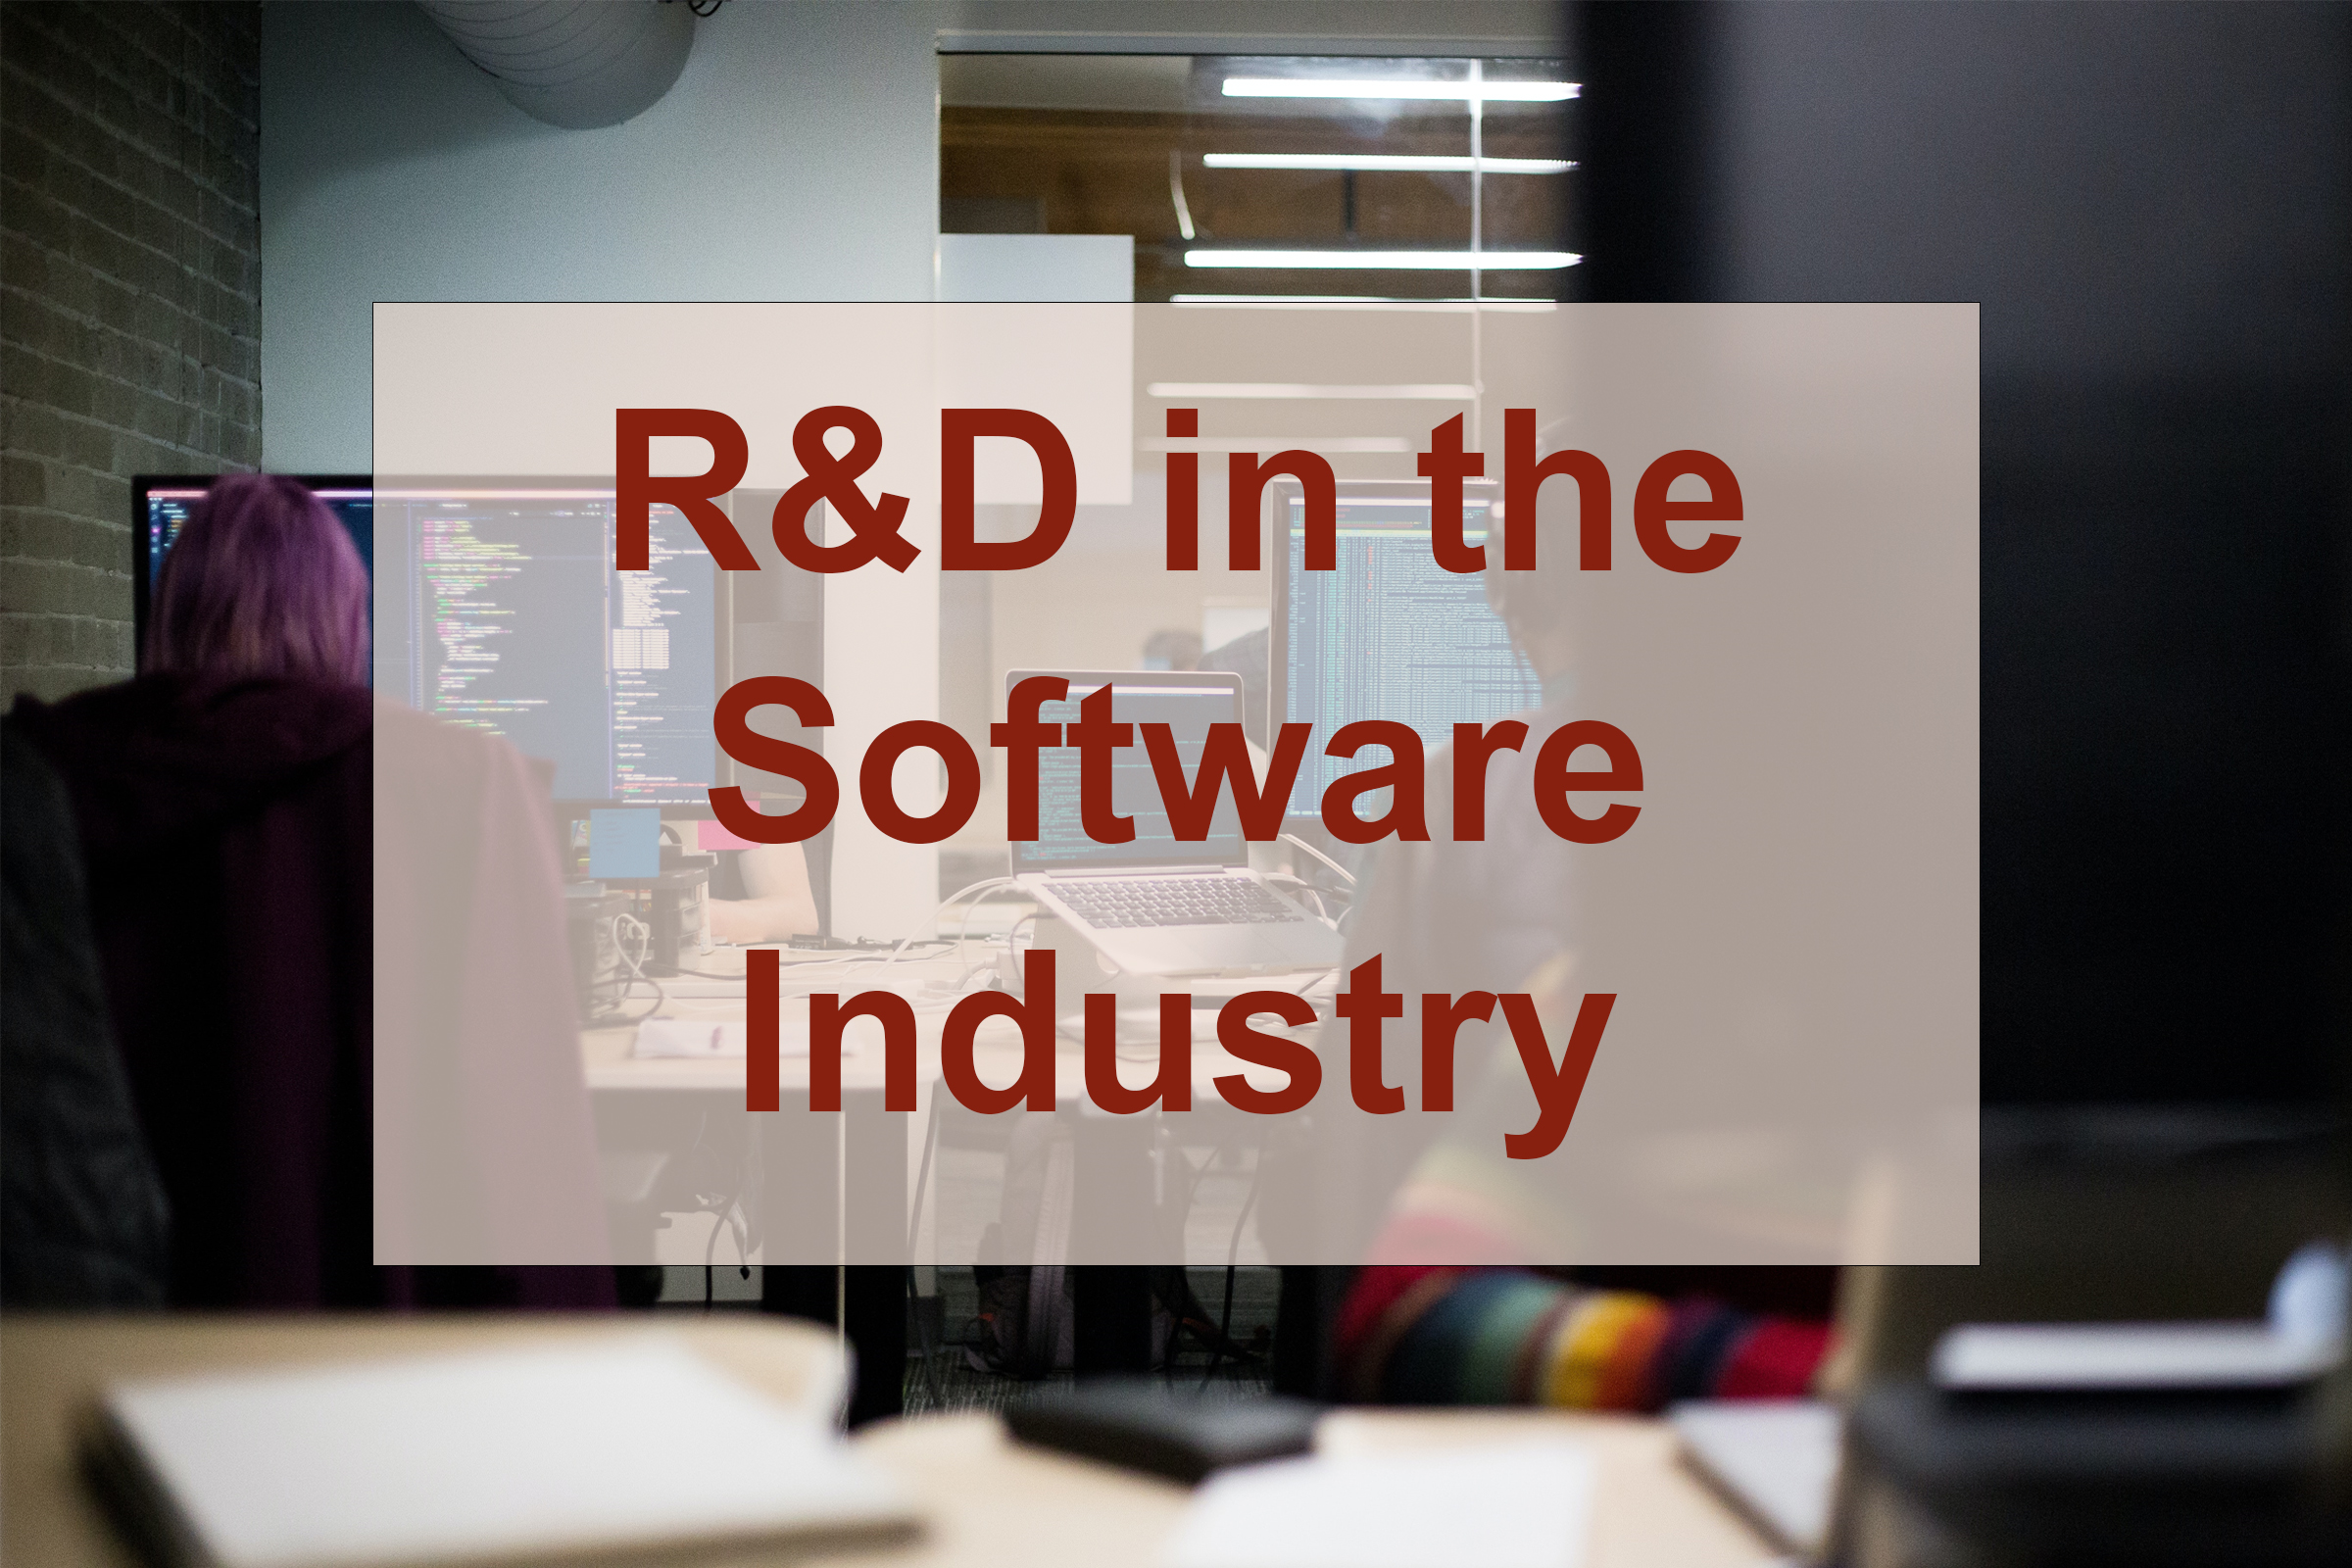 R&D in the Software Industry